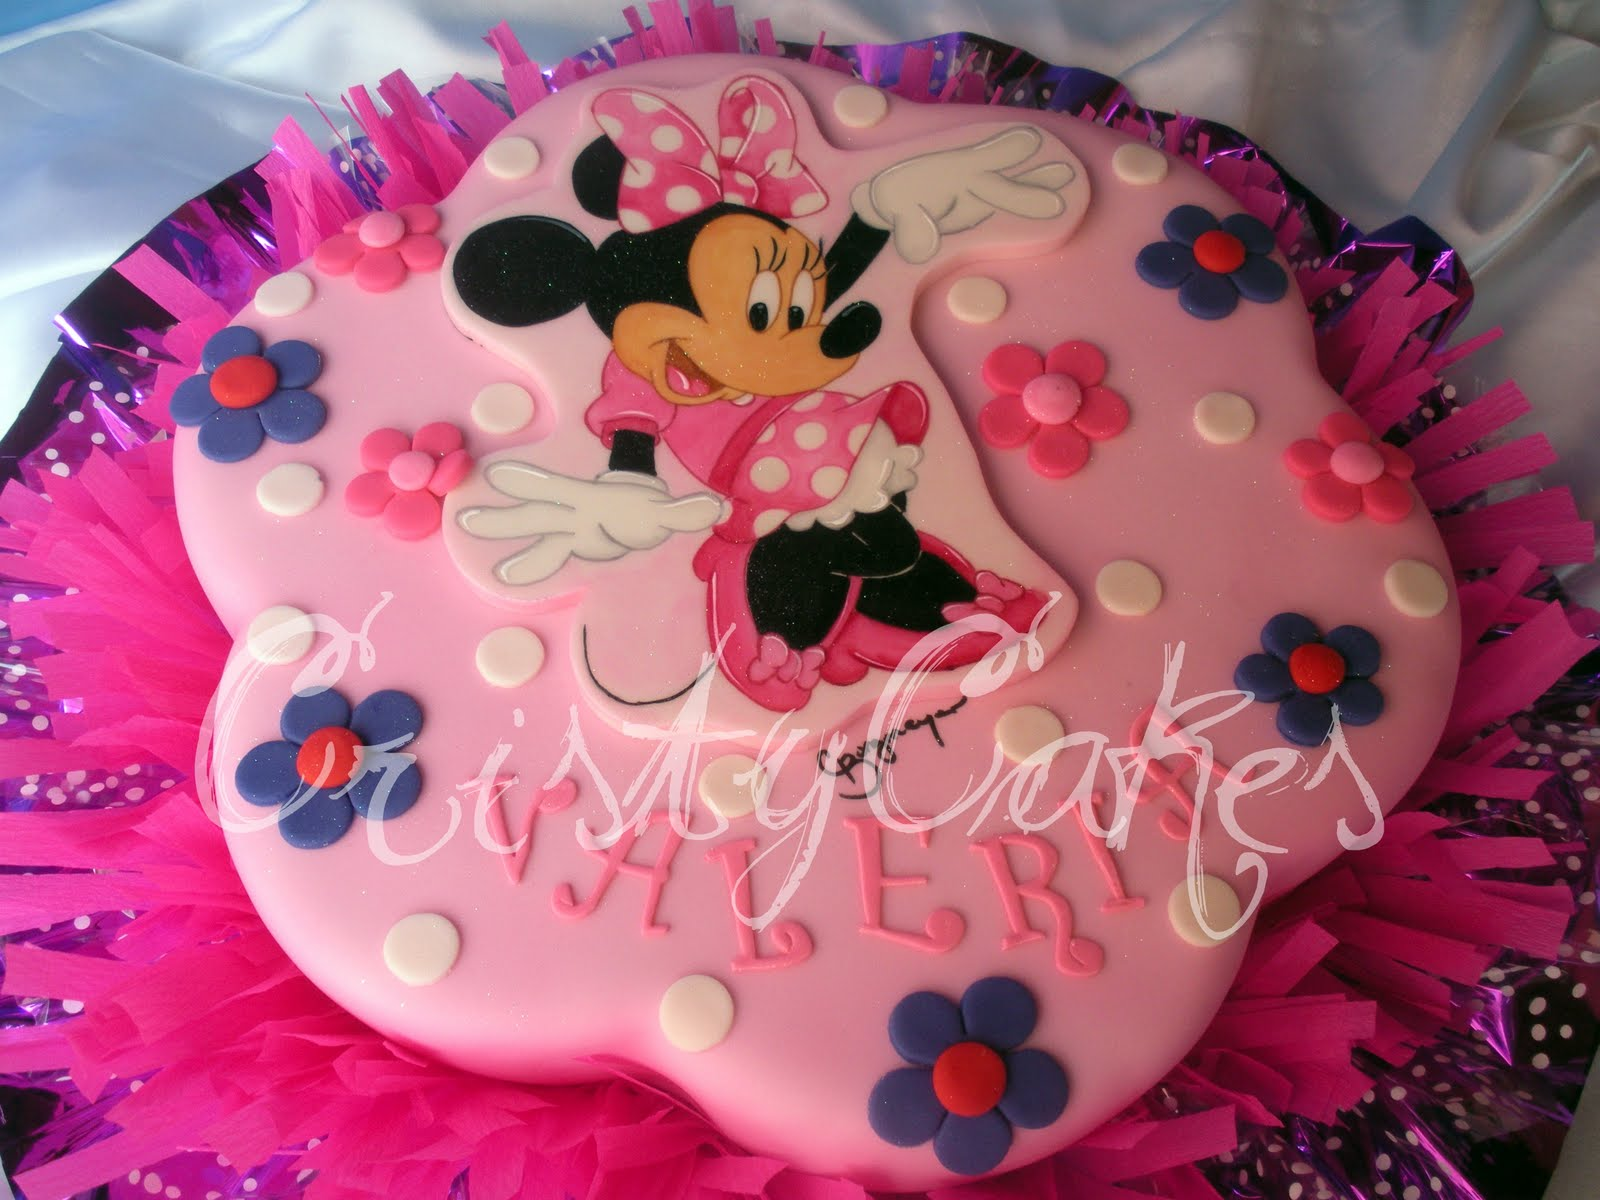 Tortas Decoradas Con Minnie Mouse Tortas Infantiles